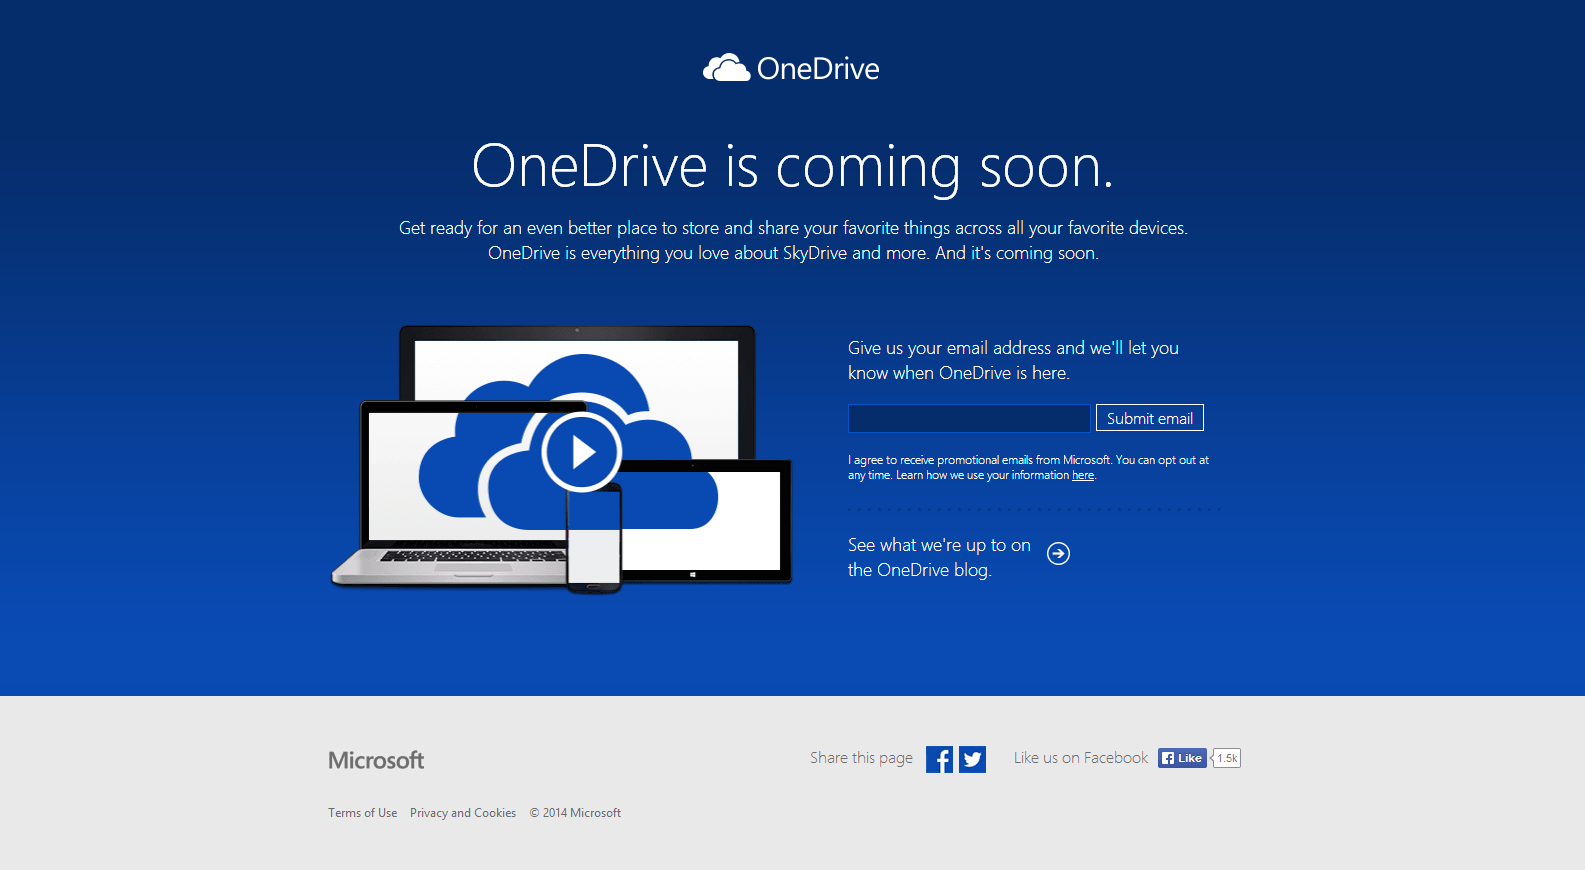 OneDrive is coming soon.